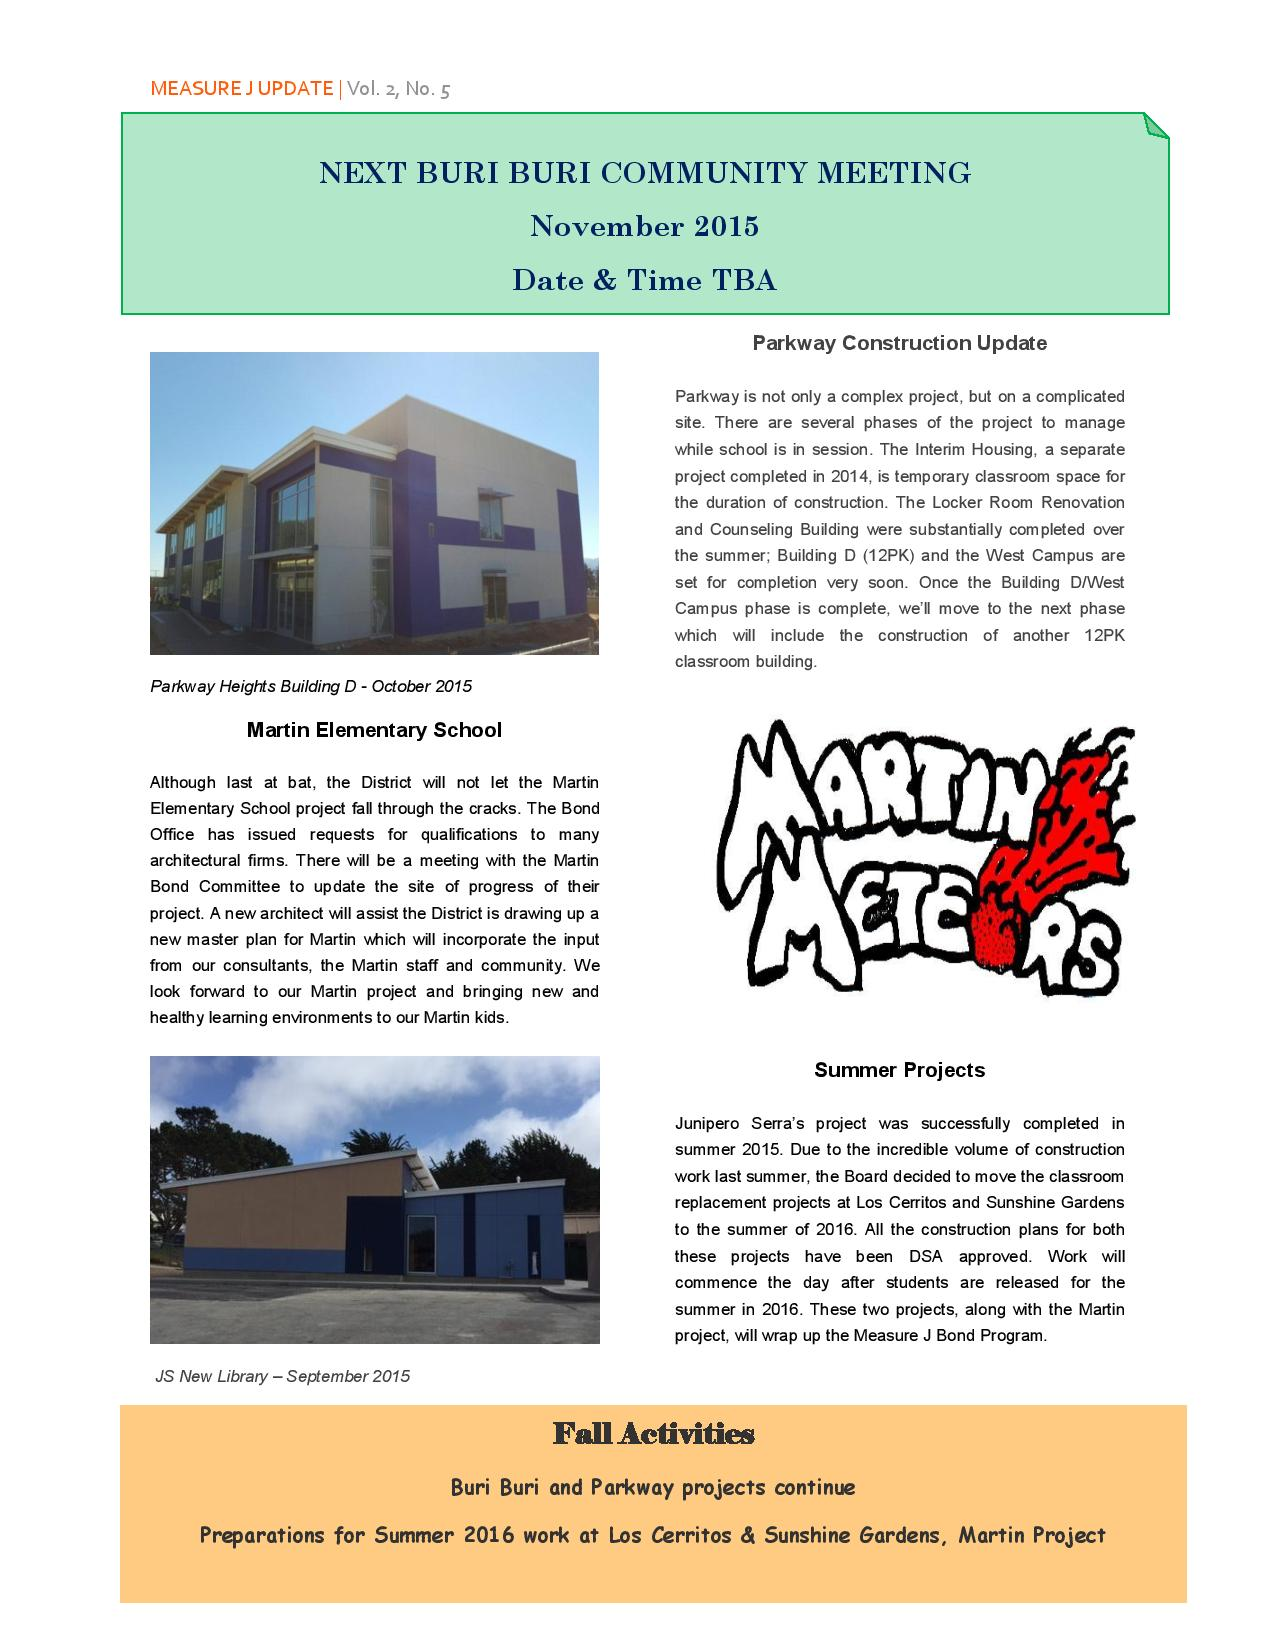 Measure J news letter Oct 2015-page-002